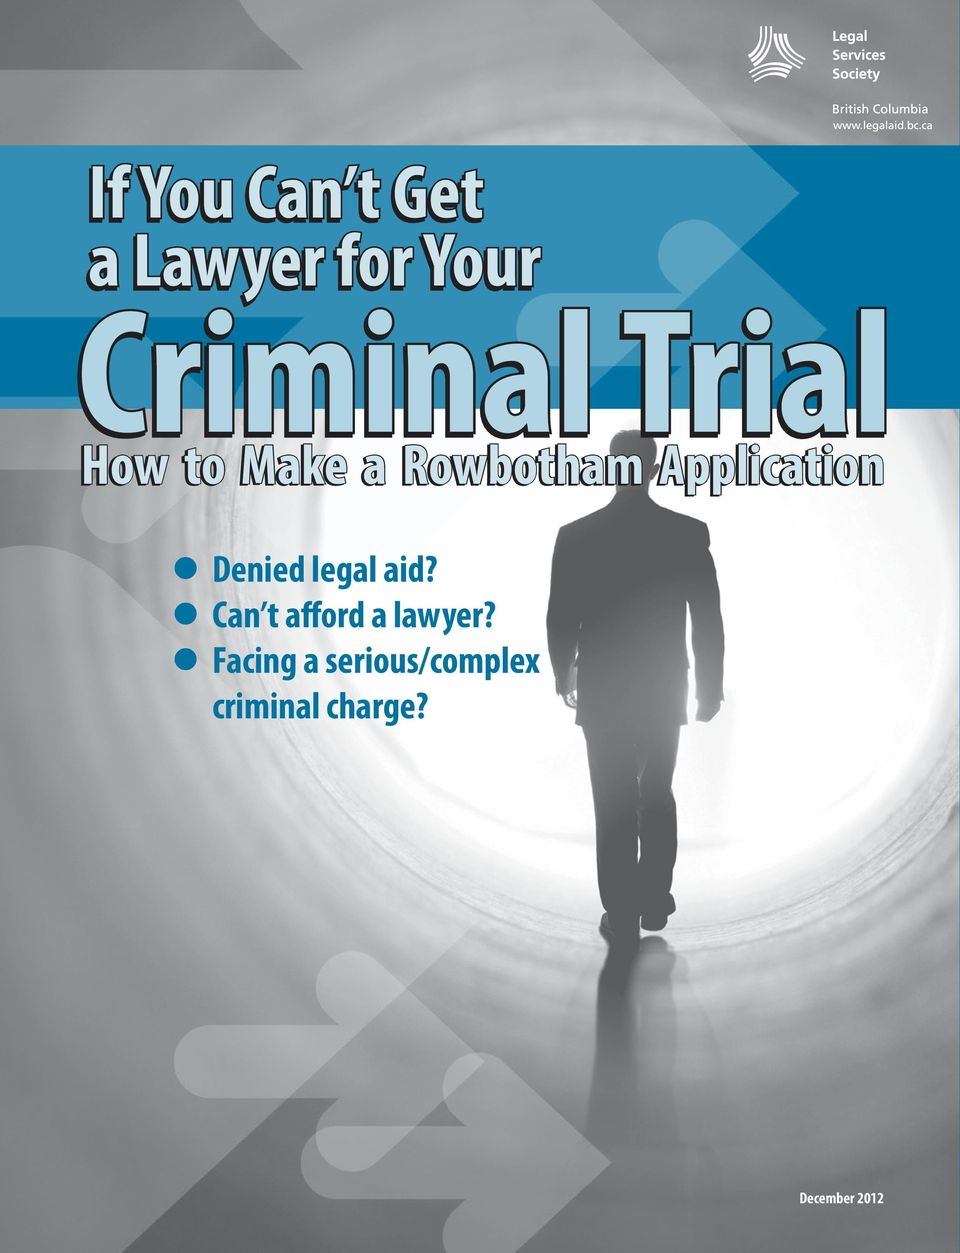 Denied legal aid? Can t afford a lawyer?